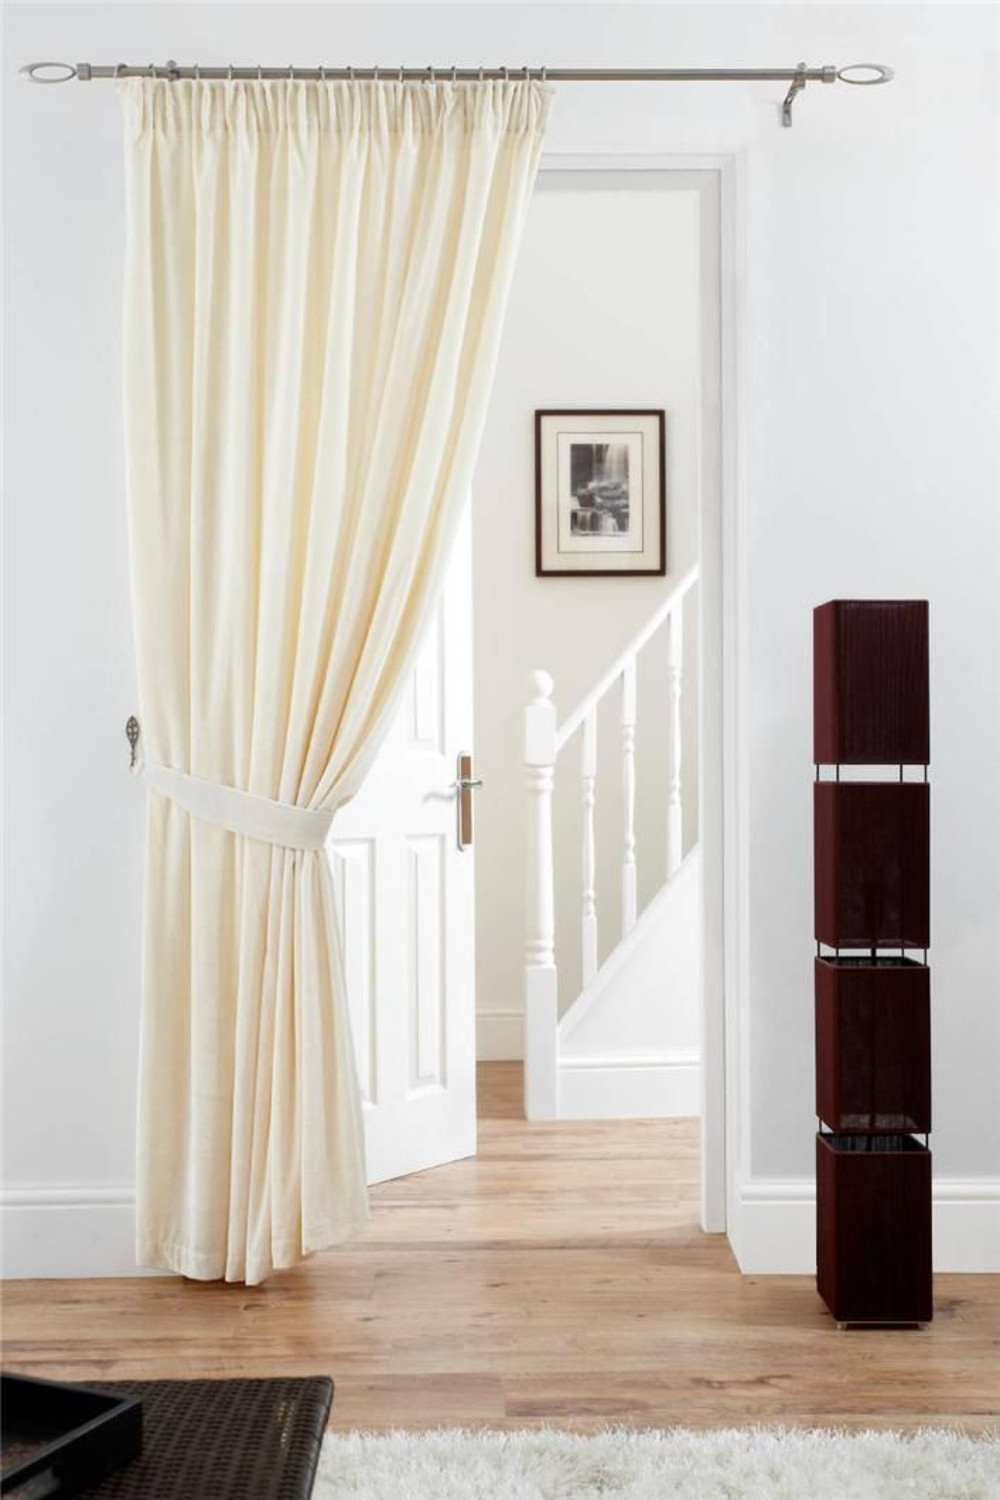 Fully-Lined-Velvet-Door-Curtain-Pencil-Pleat-Deep- & Fully Lined Velvet Door Curtain Pencil Pleat Deep Pile Polyester ...